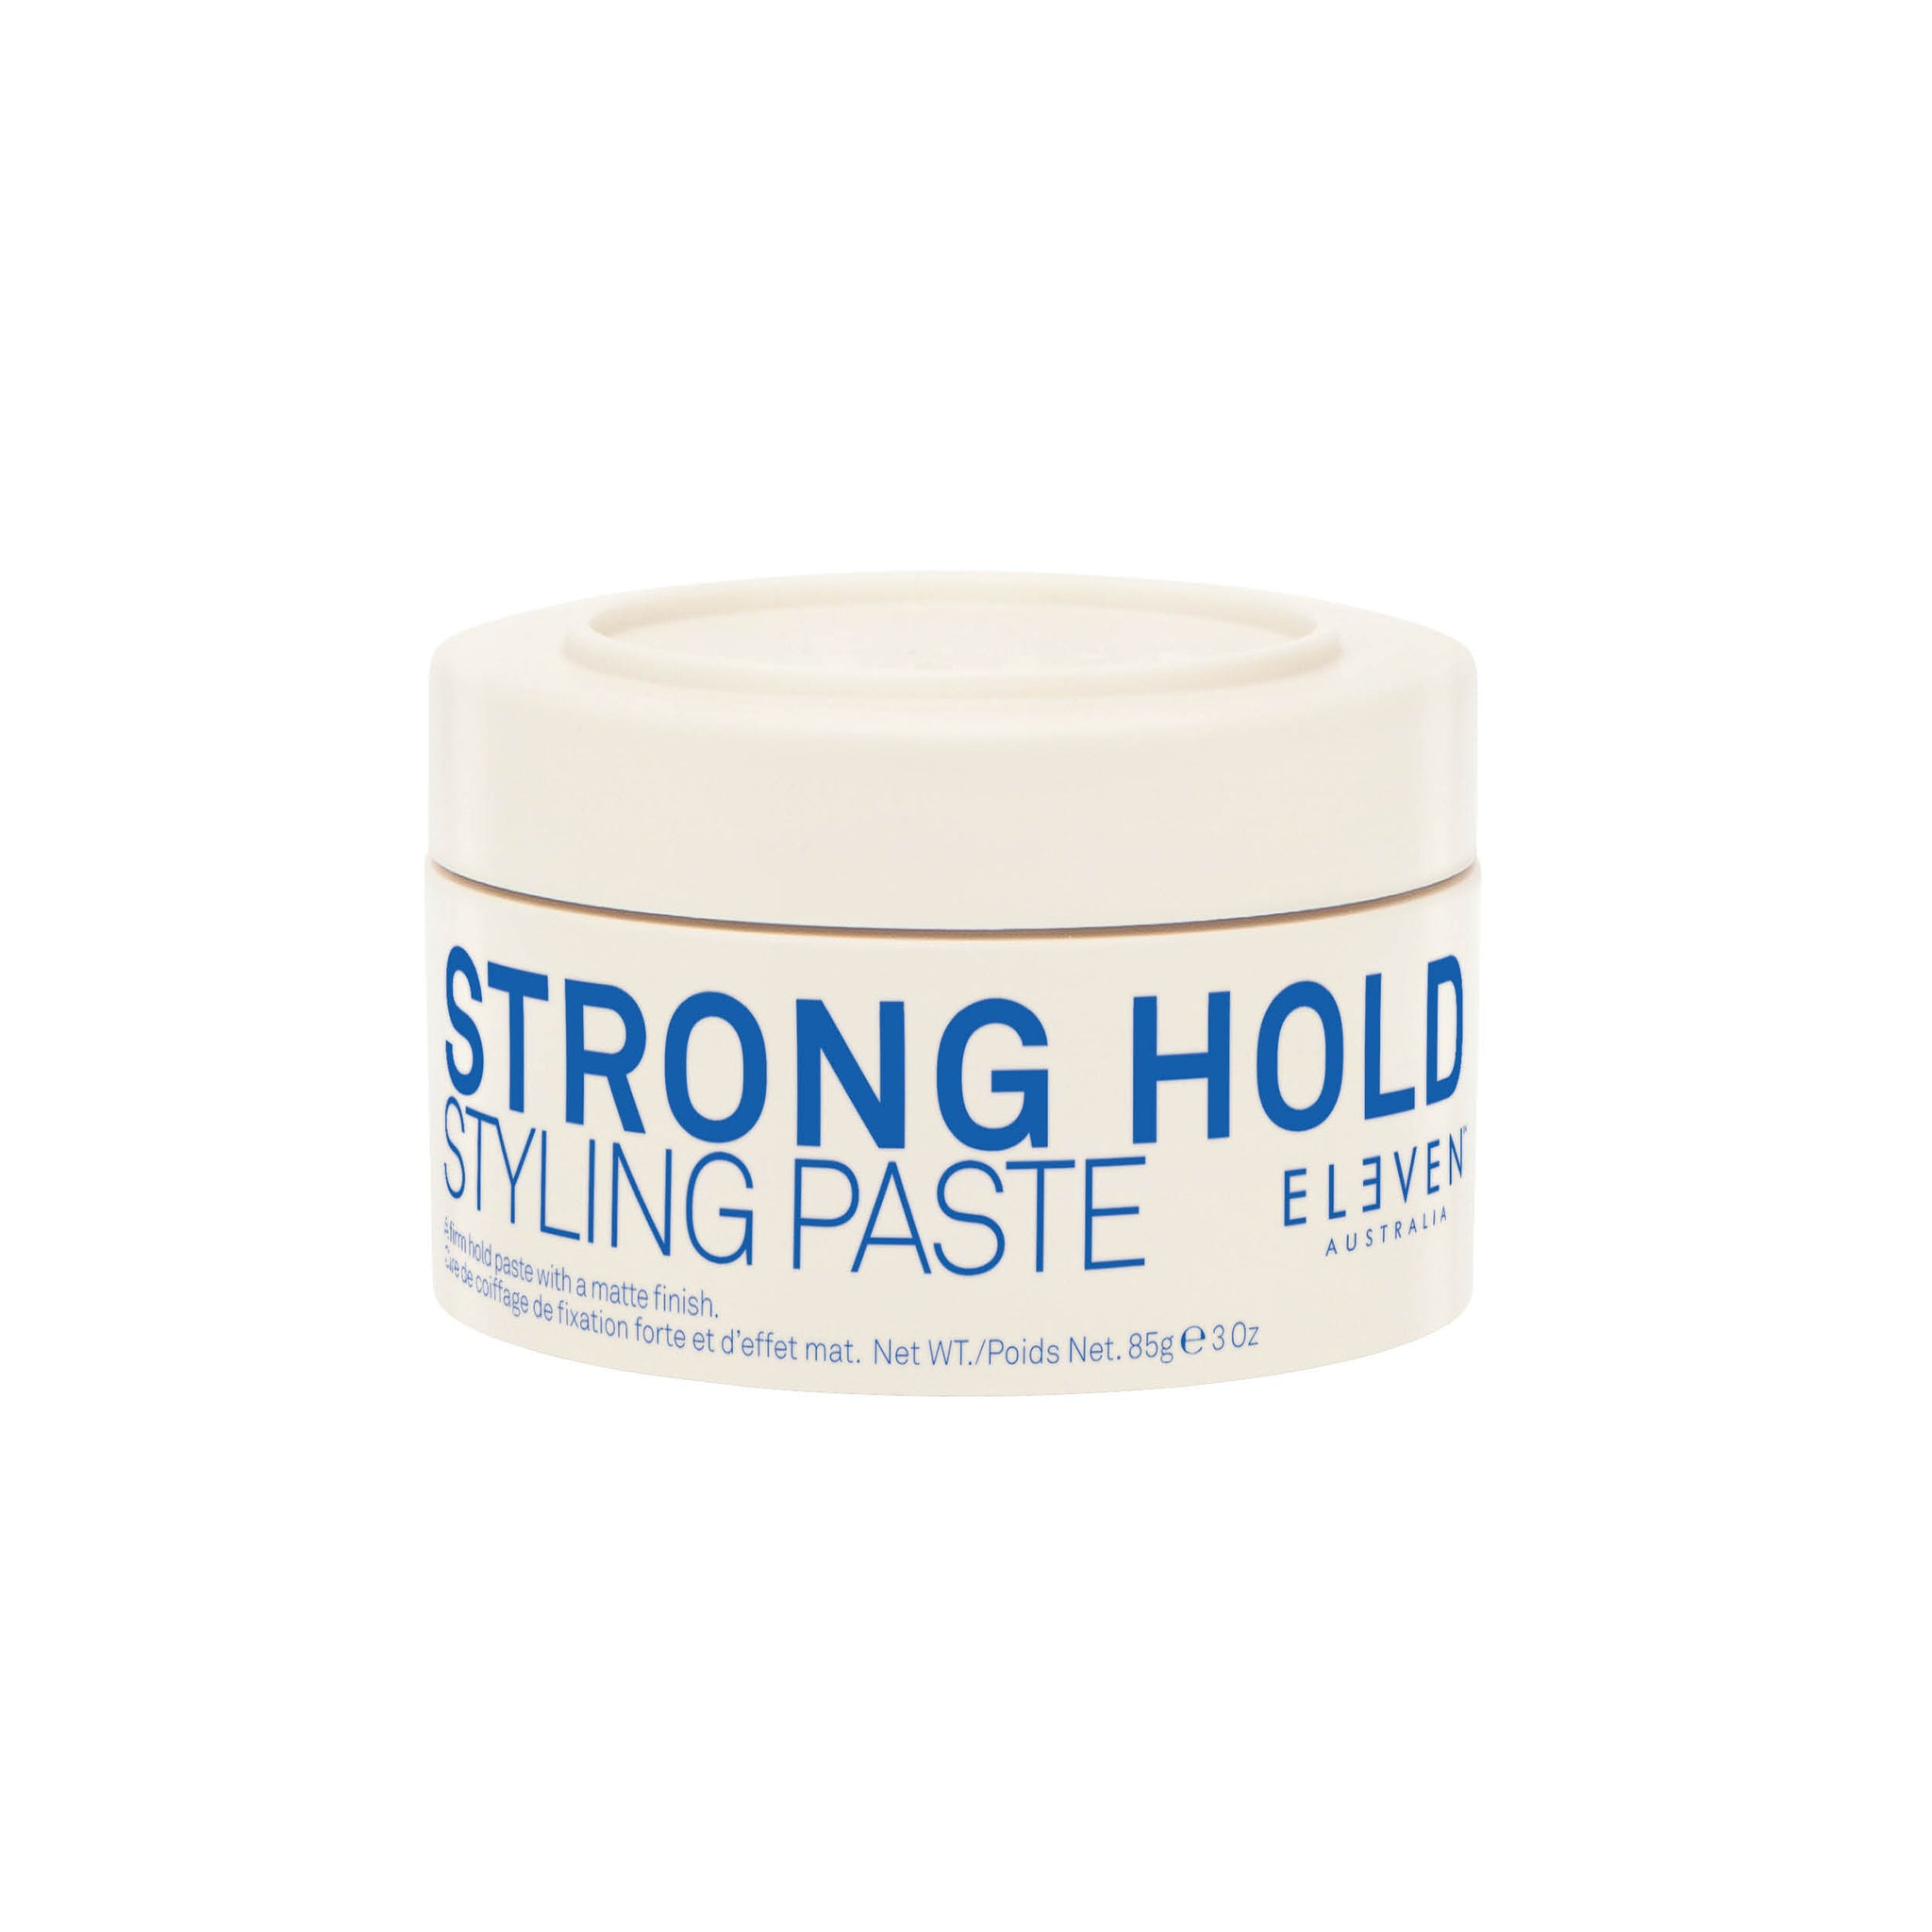 ELEVEN Strong Hold Styling Paste